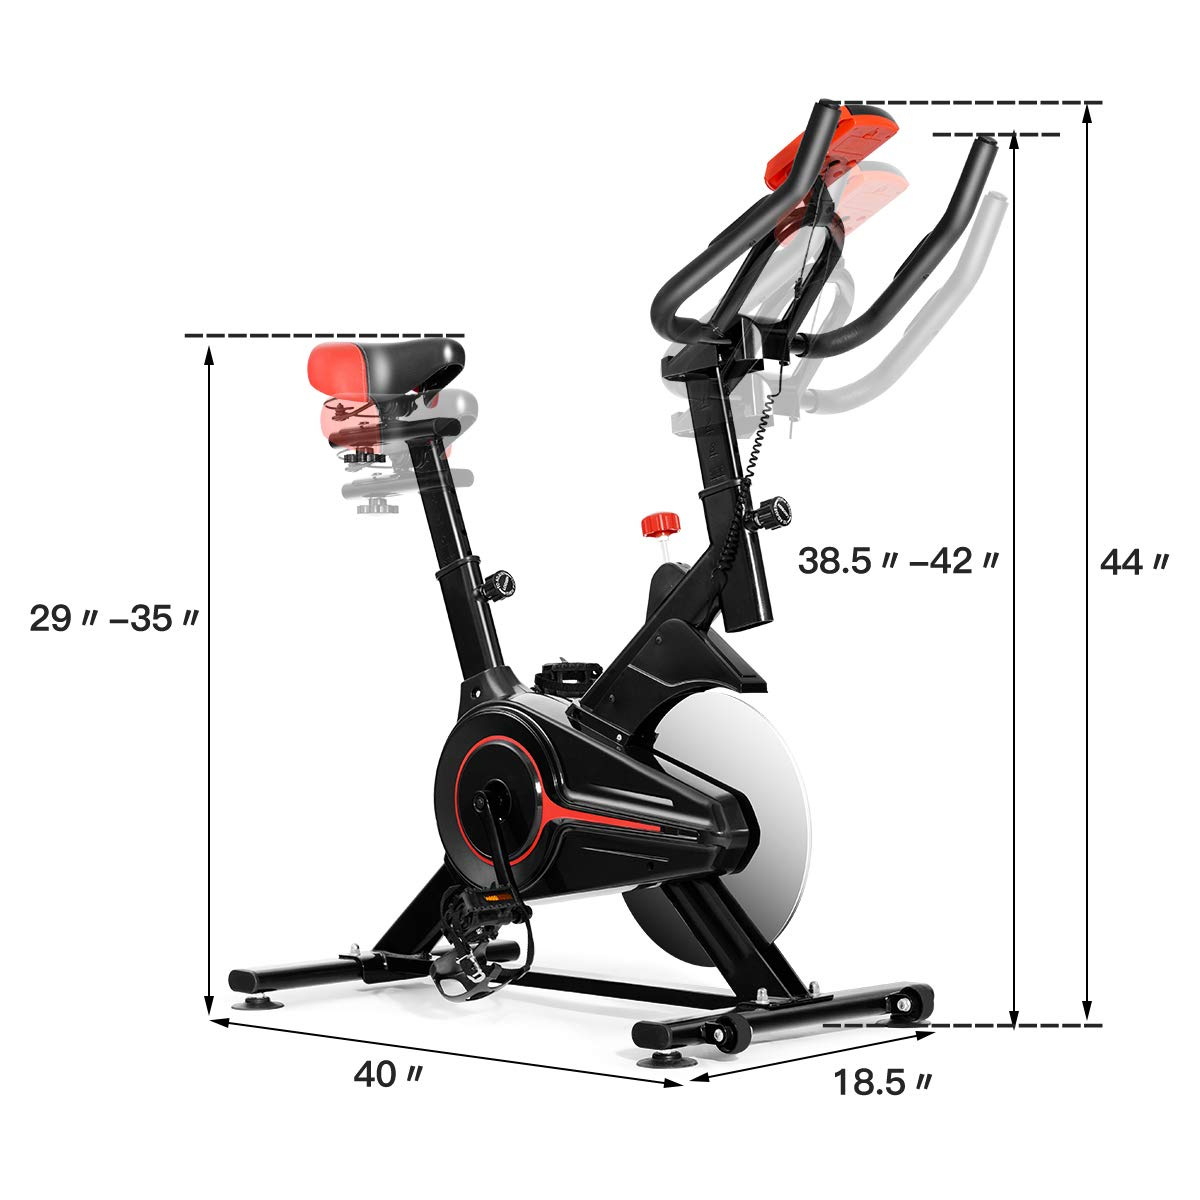 Details about  /Indoor Cycling Bike Exercise Cycle Trainer Fitness Cardio Workout LCD Display